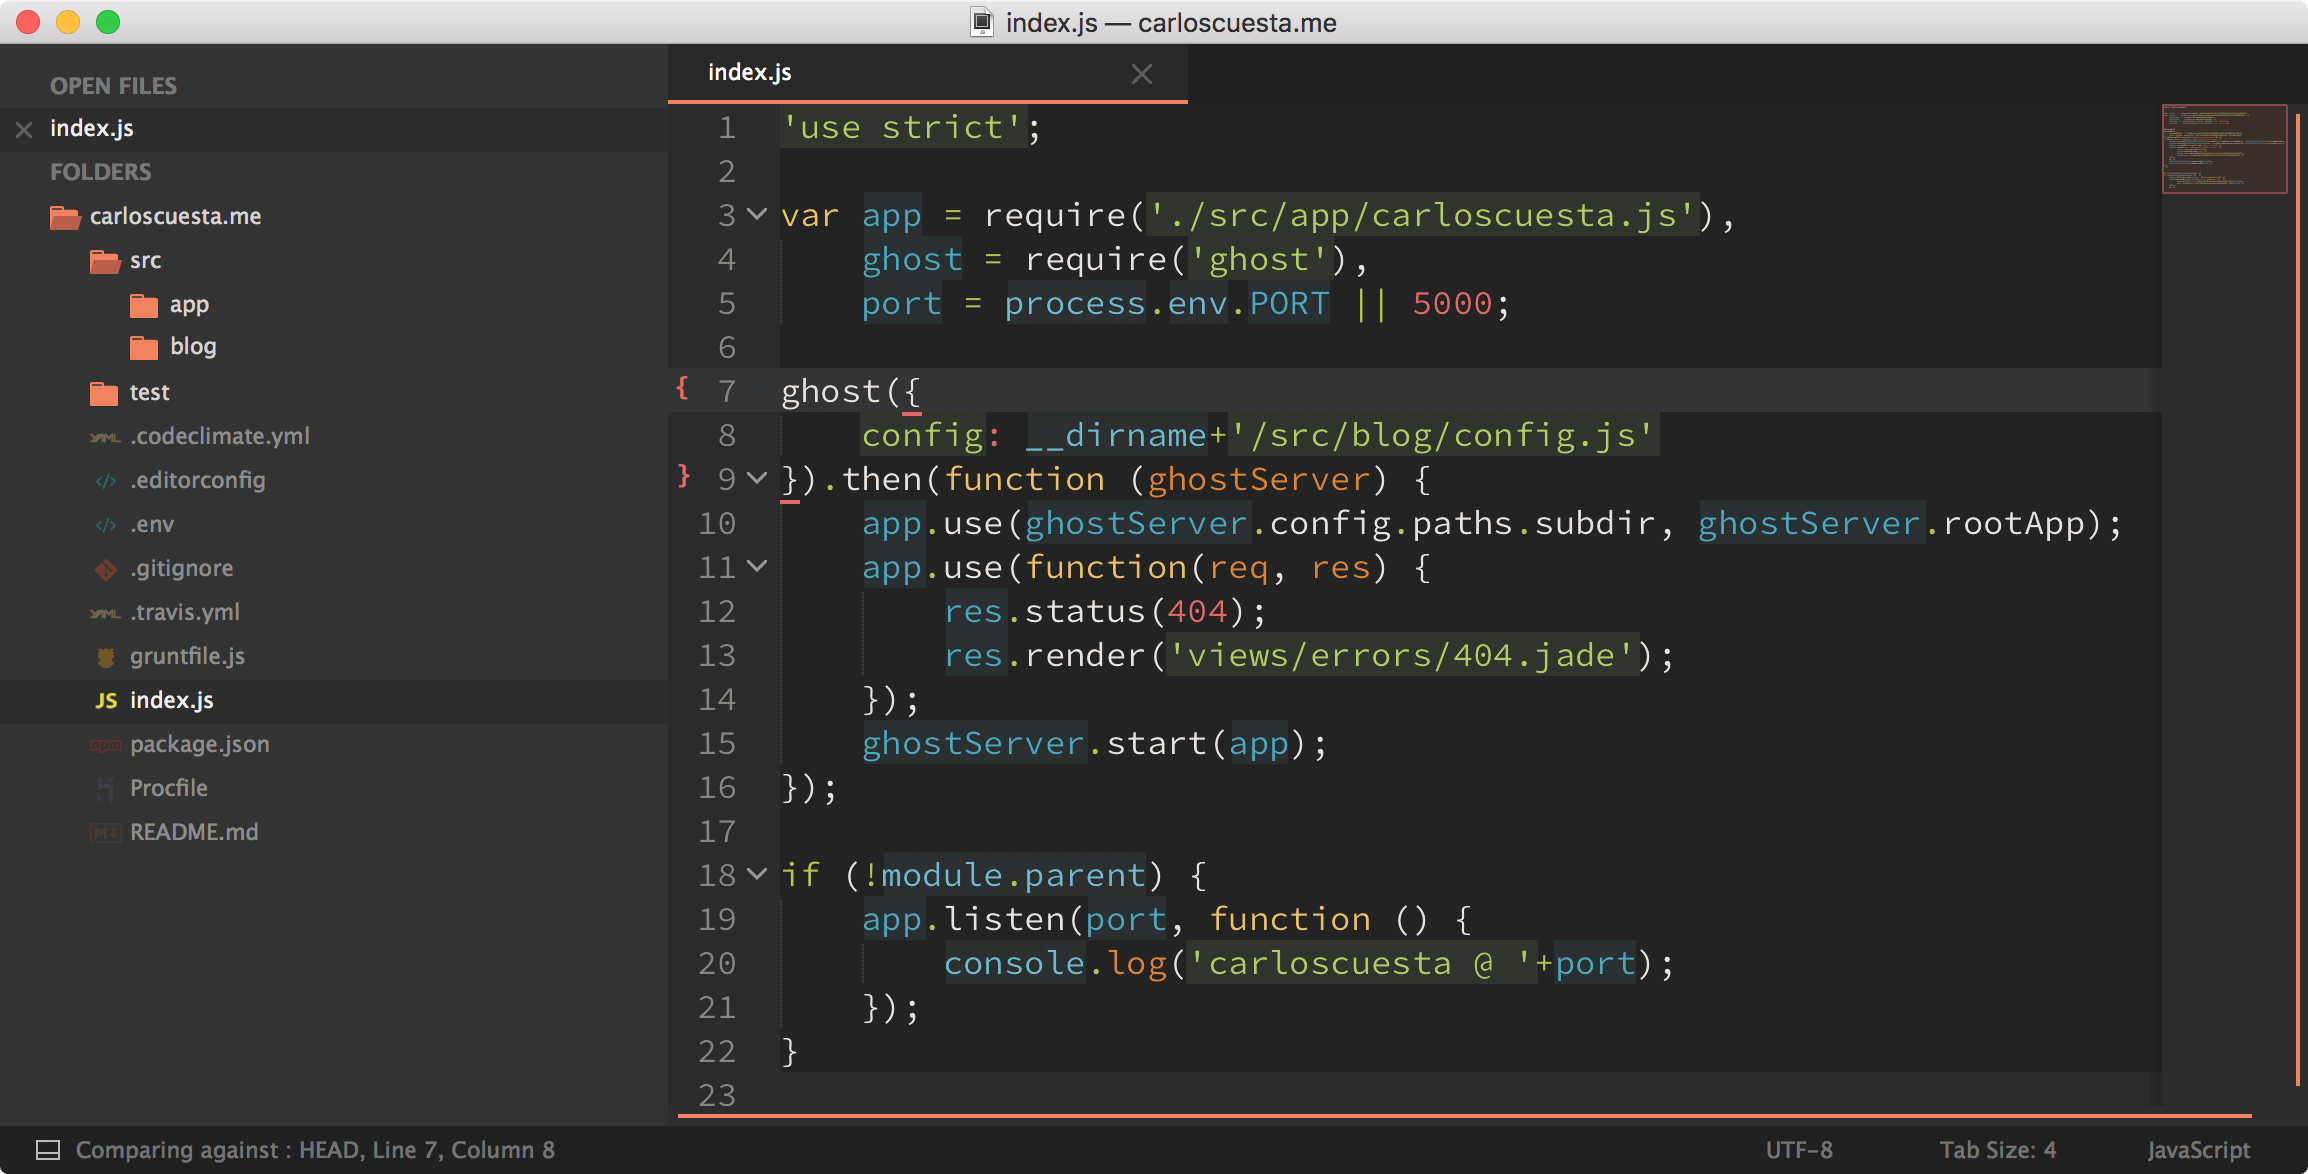 sublime text 3 color schemes